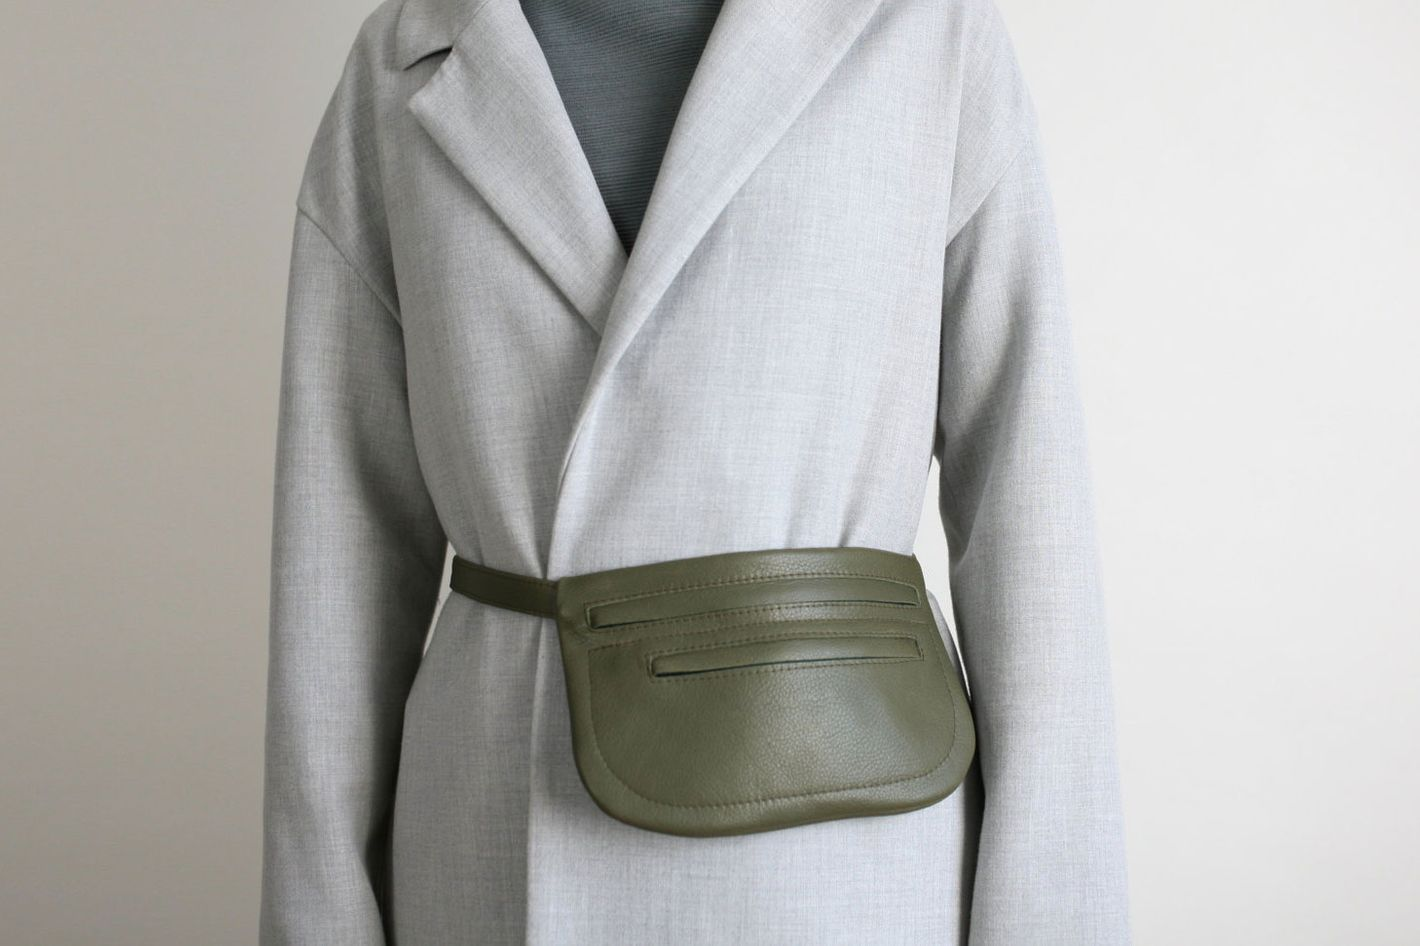 Olive Green Fanny Pack